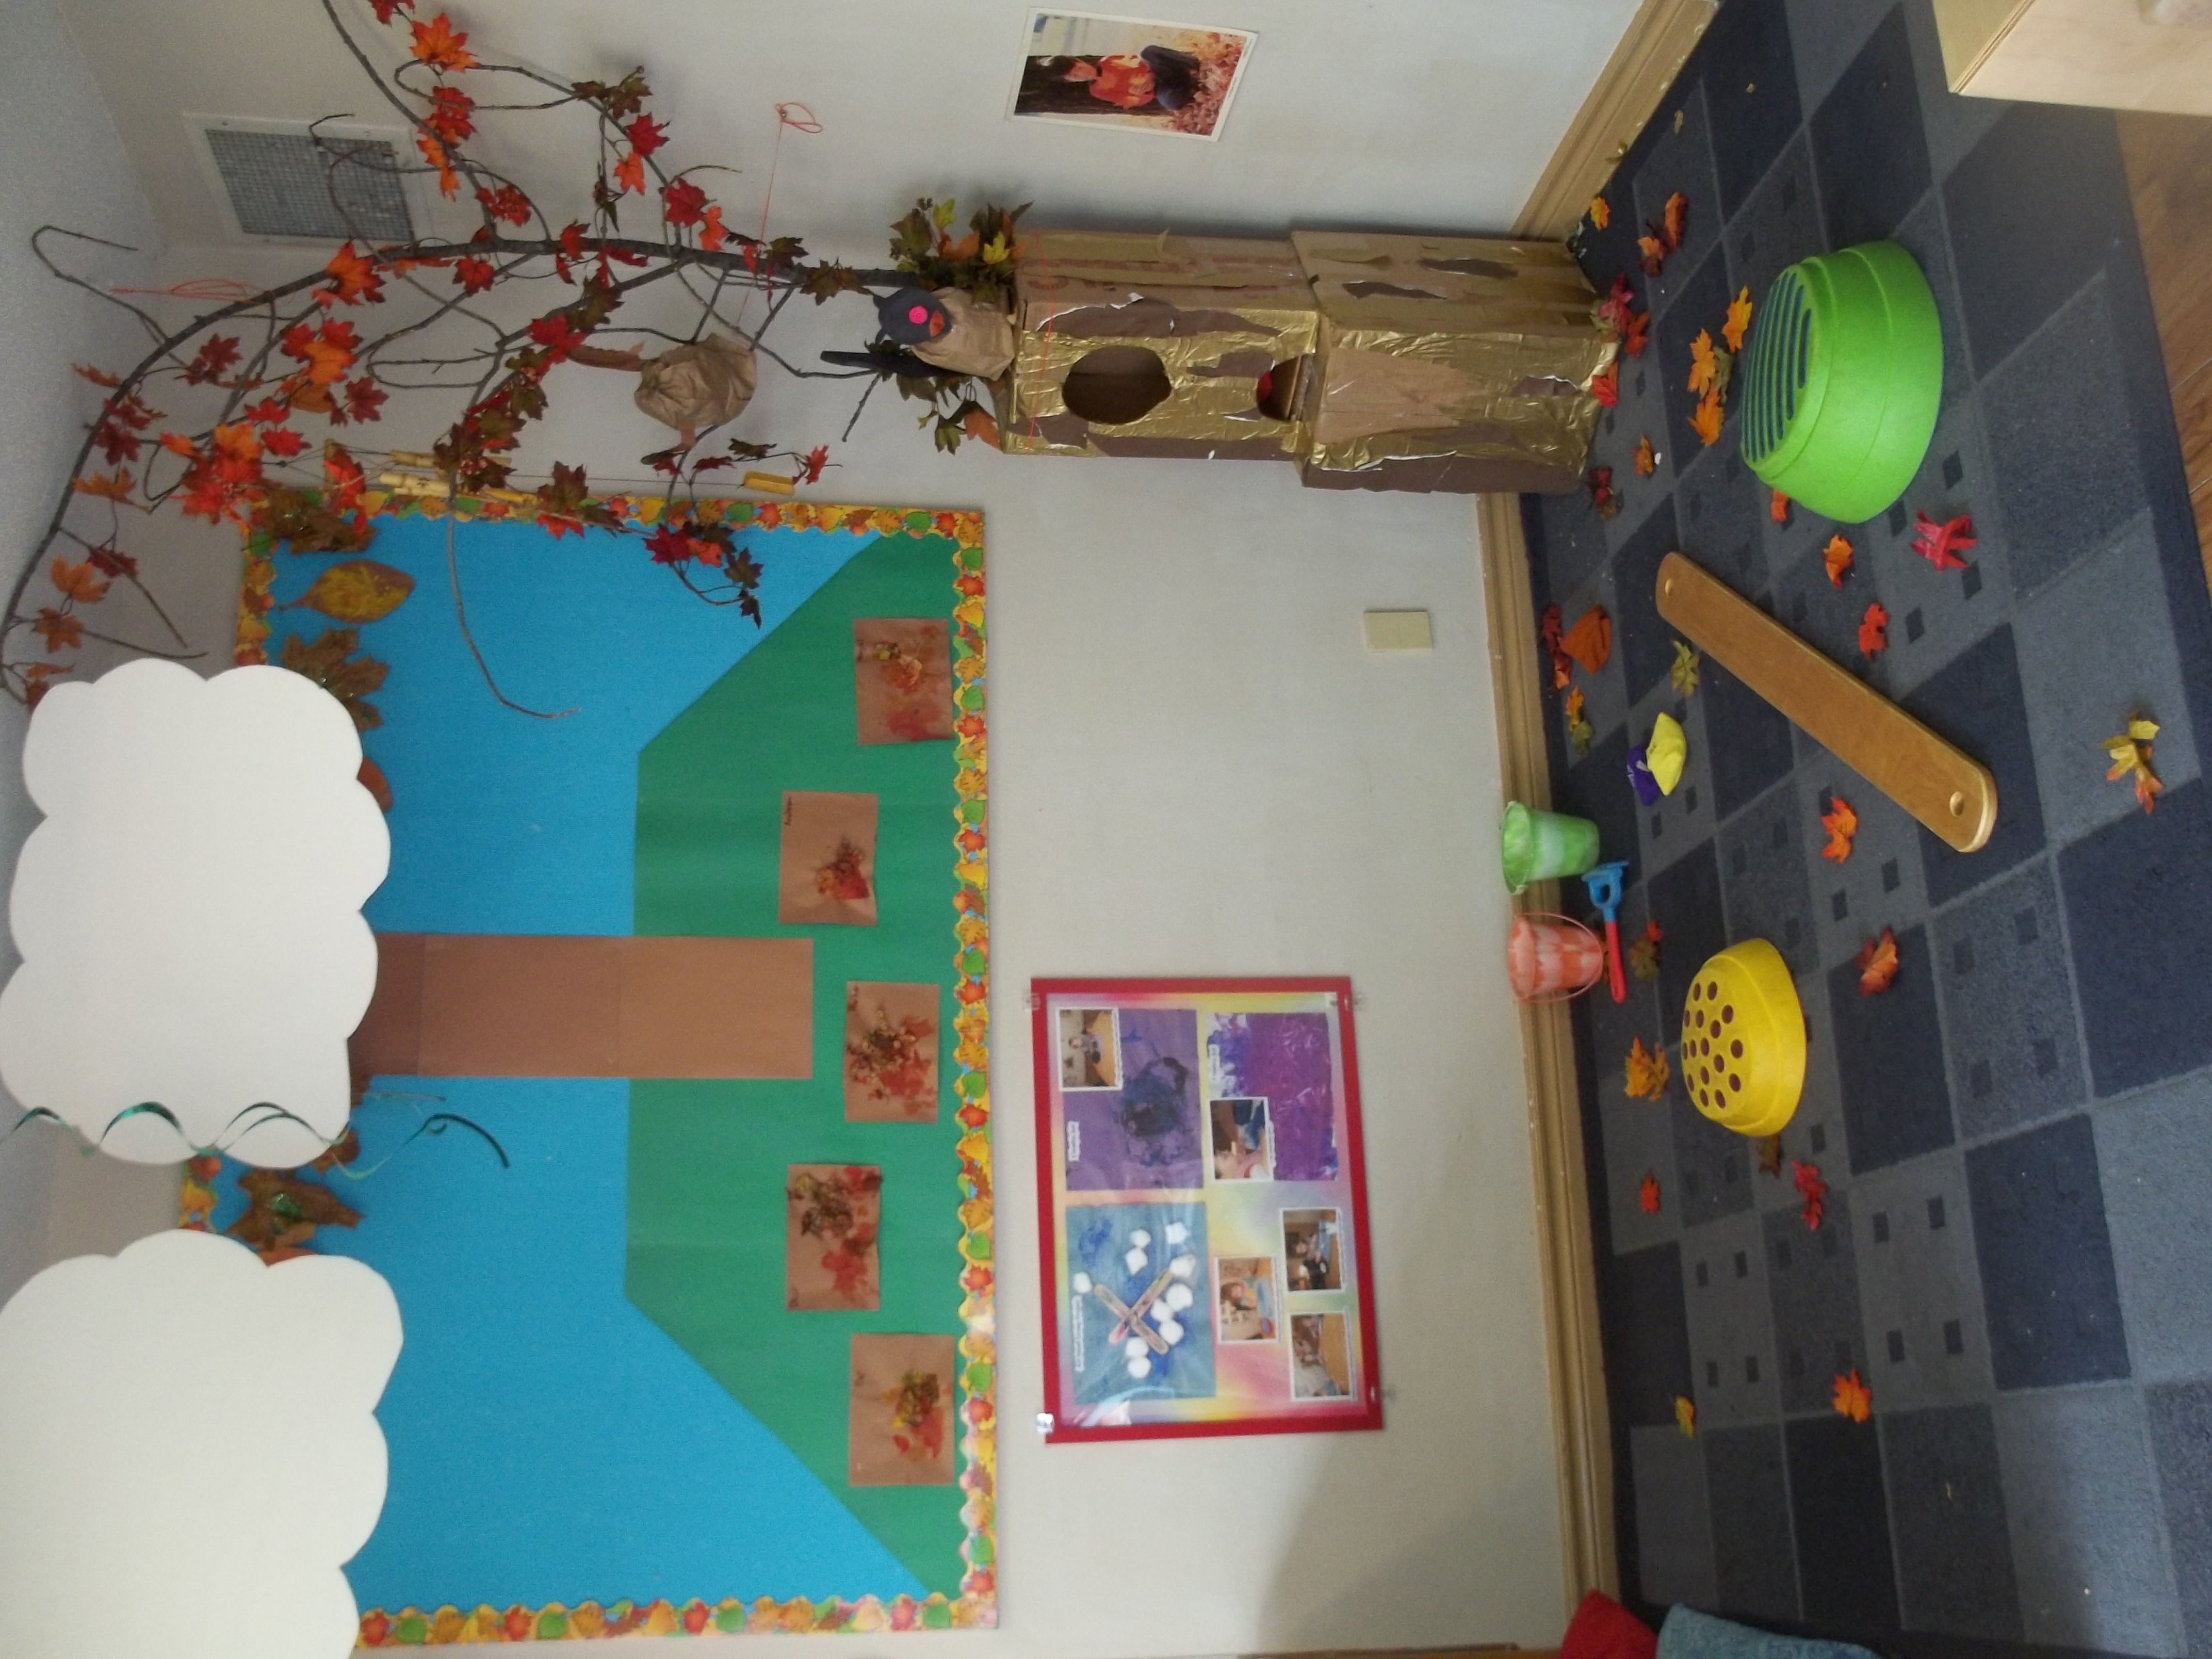 The leaves are falling! The toddler room gross motor center has become a fall park. Toddlers are able to practice climbing and balancing on stepping stones and 'logs', or collect and rake leaves sprinkled on the floor.